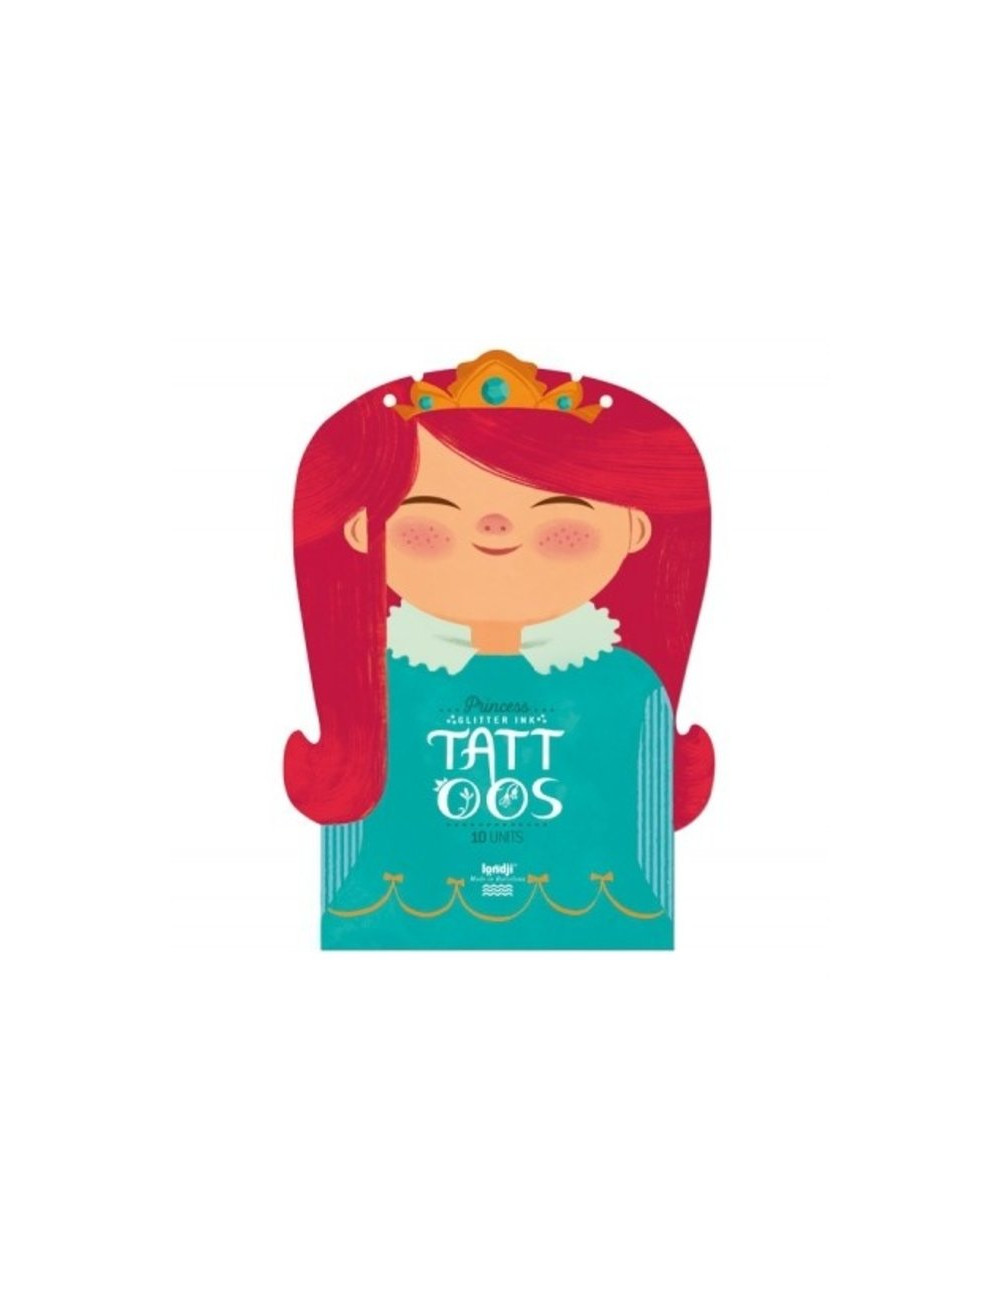 Tattoos (set van 10) | Princess